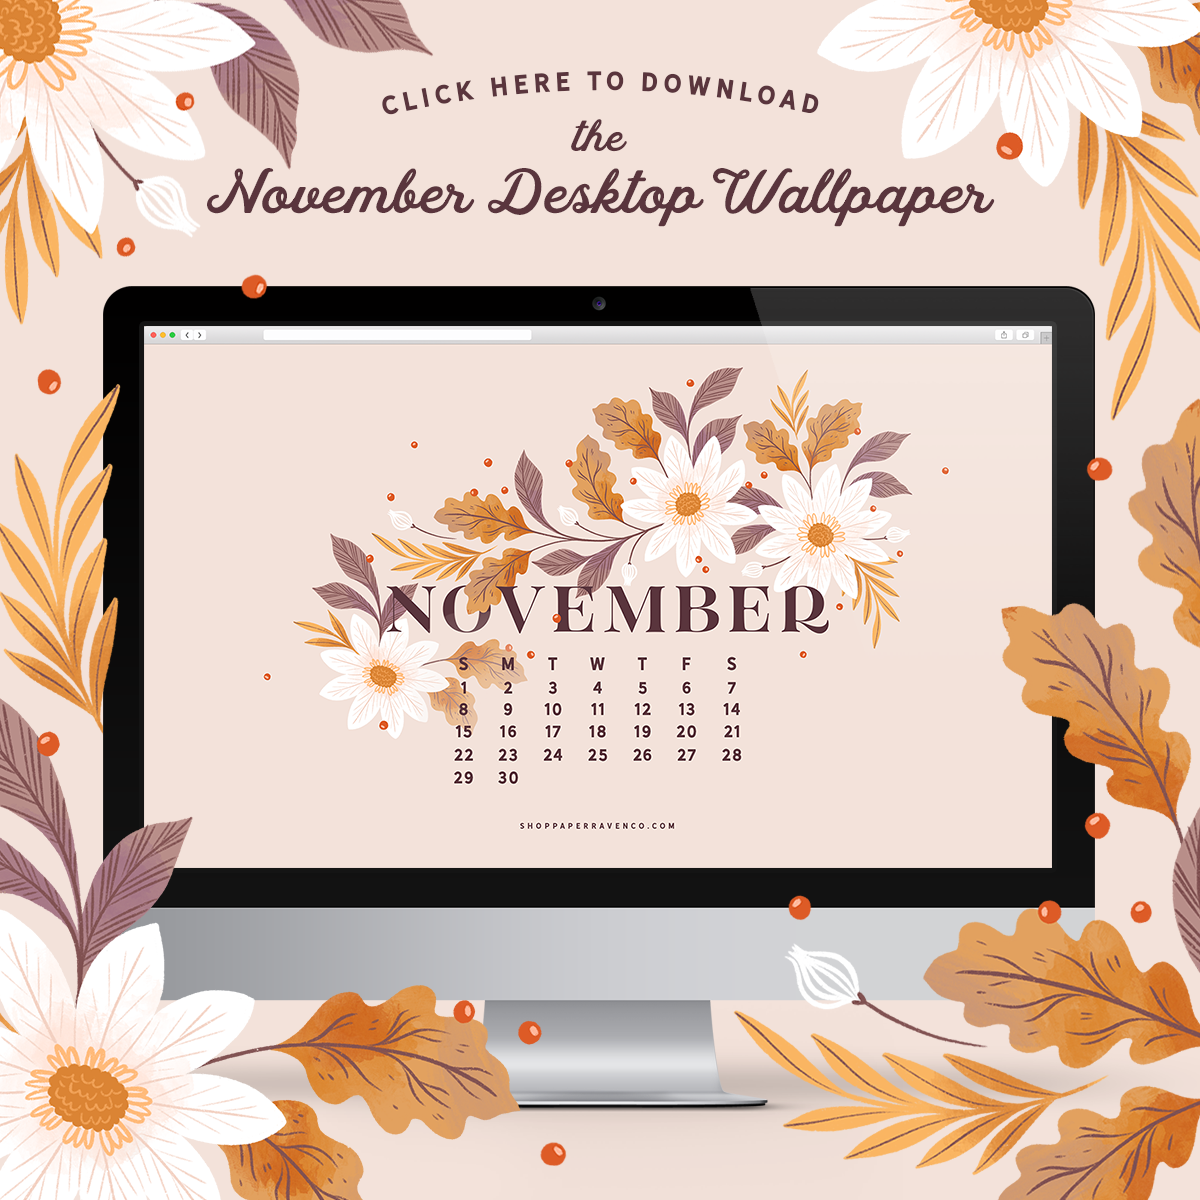 November 2020 Illustrated Desktop Wallpaper by Paper Raven Co. | www.ShopPaperRavenCo.com #dressyourtech #desktopwallpaper #desktopdownload